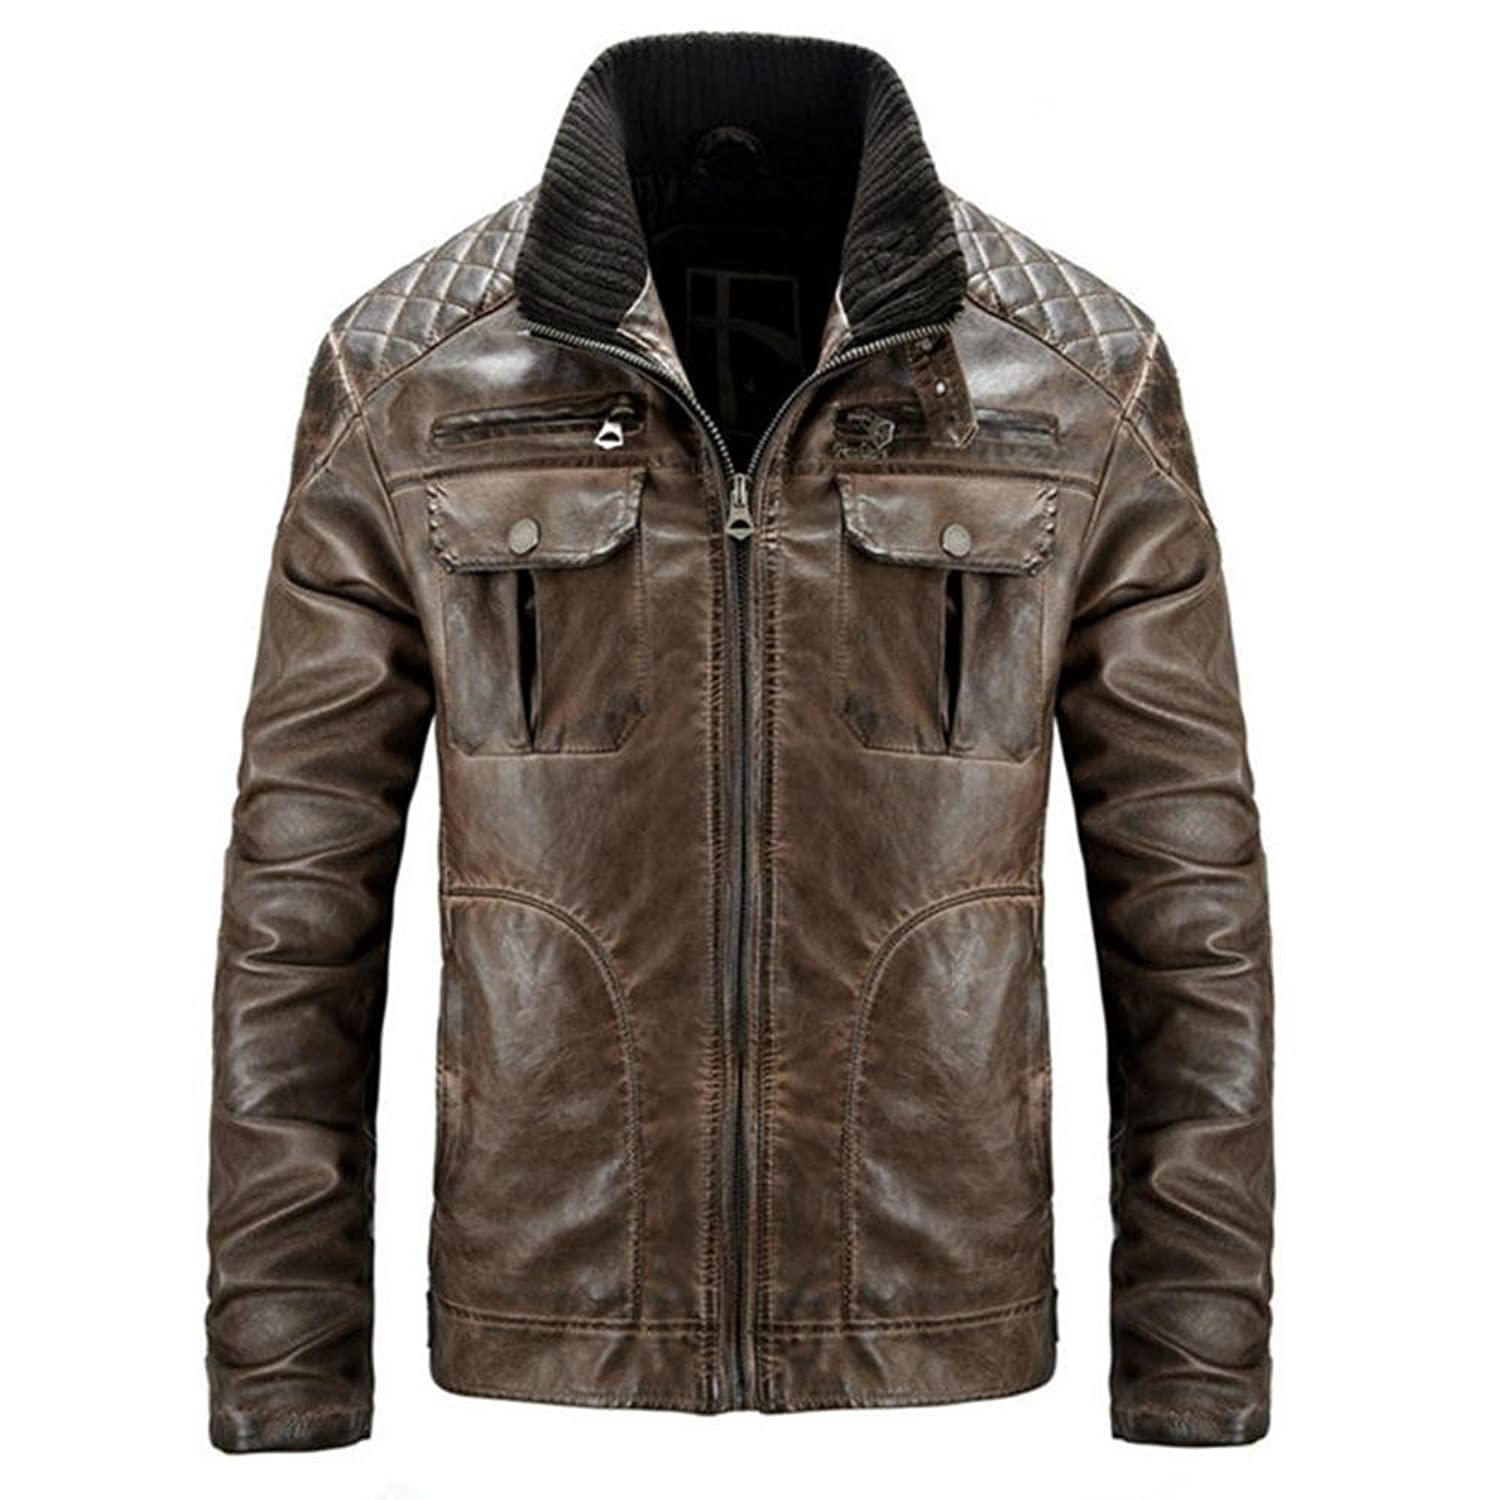 Hzcx Fashion Mens washed vintage stand collar zipper closure faux leather jacket